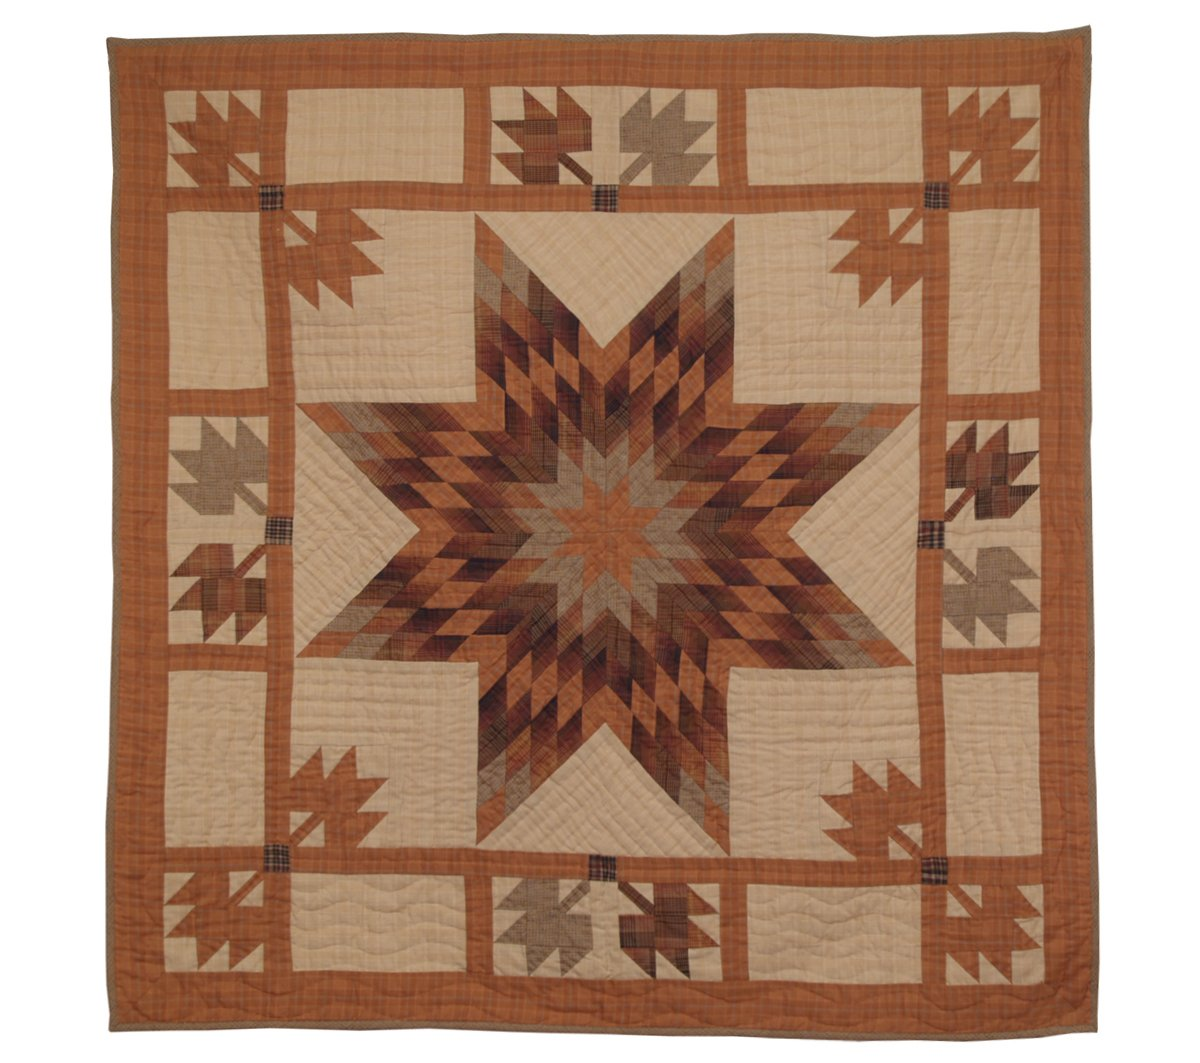 Autumn Splendor Wall Hanging Quilt 44 Inches by 44 Inches 100% Cotton Handmade Hand Quilted Heirloom Quality